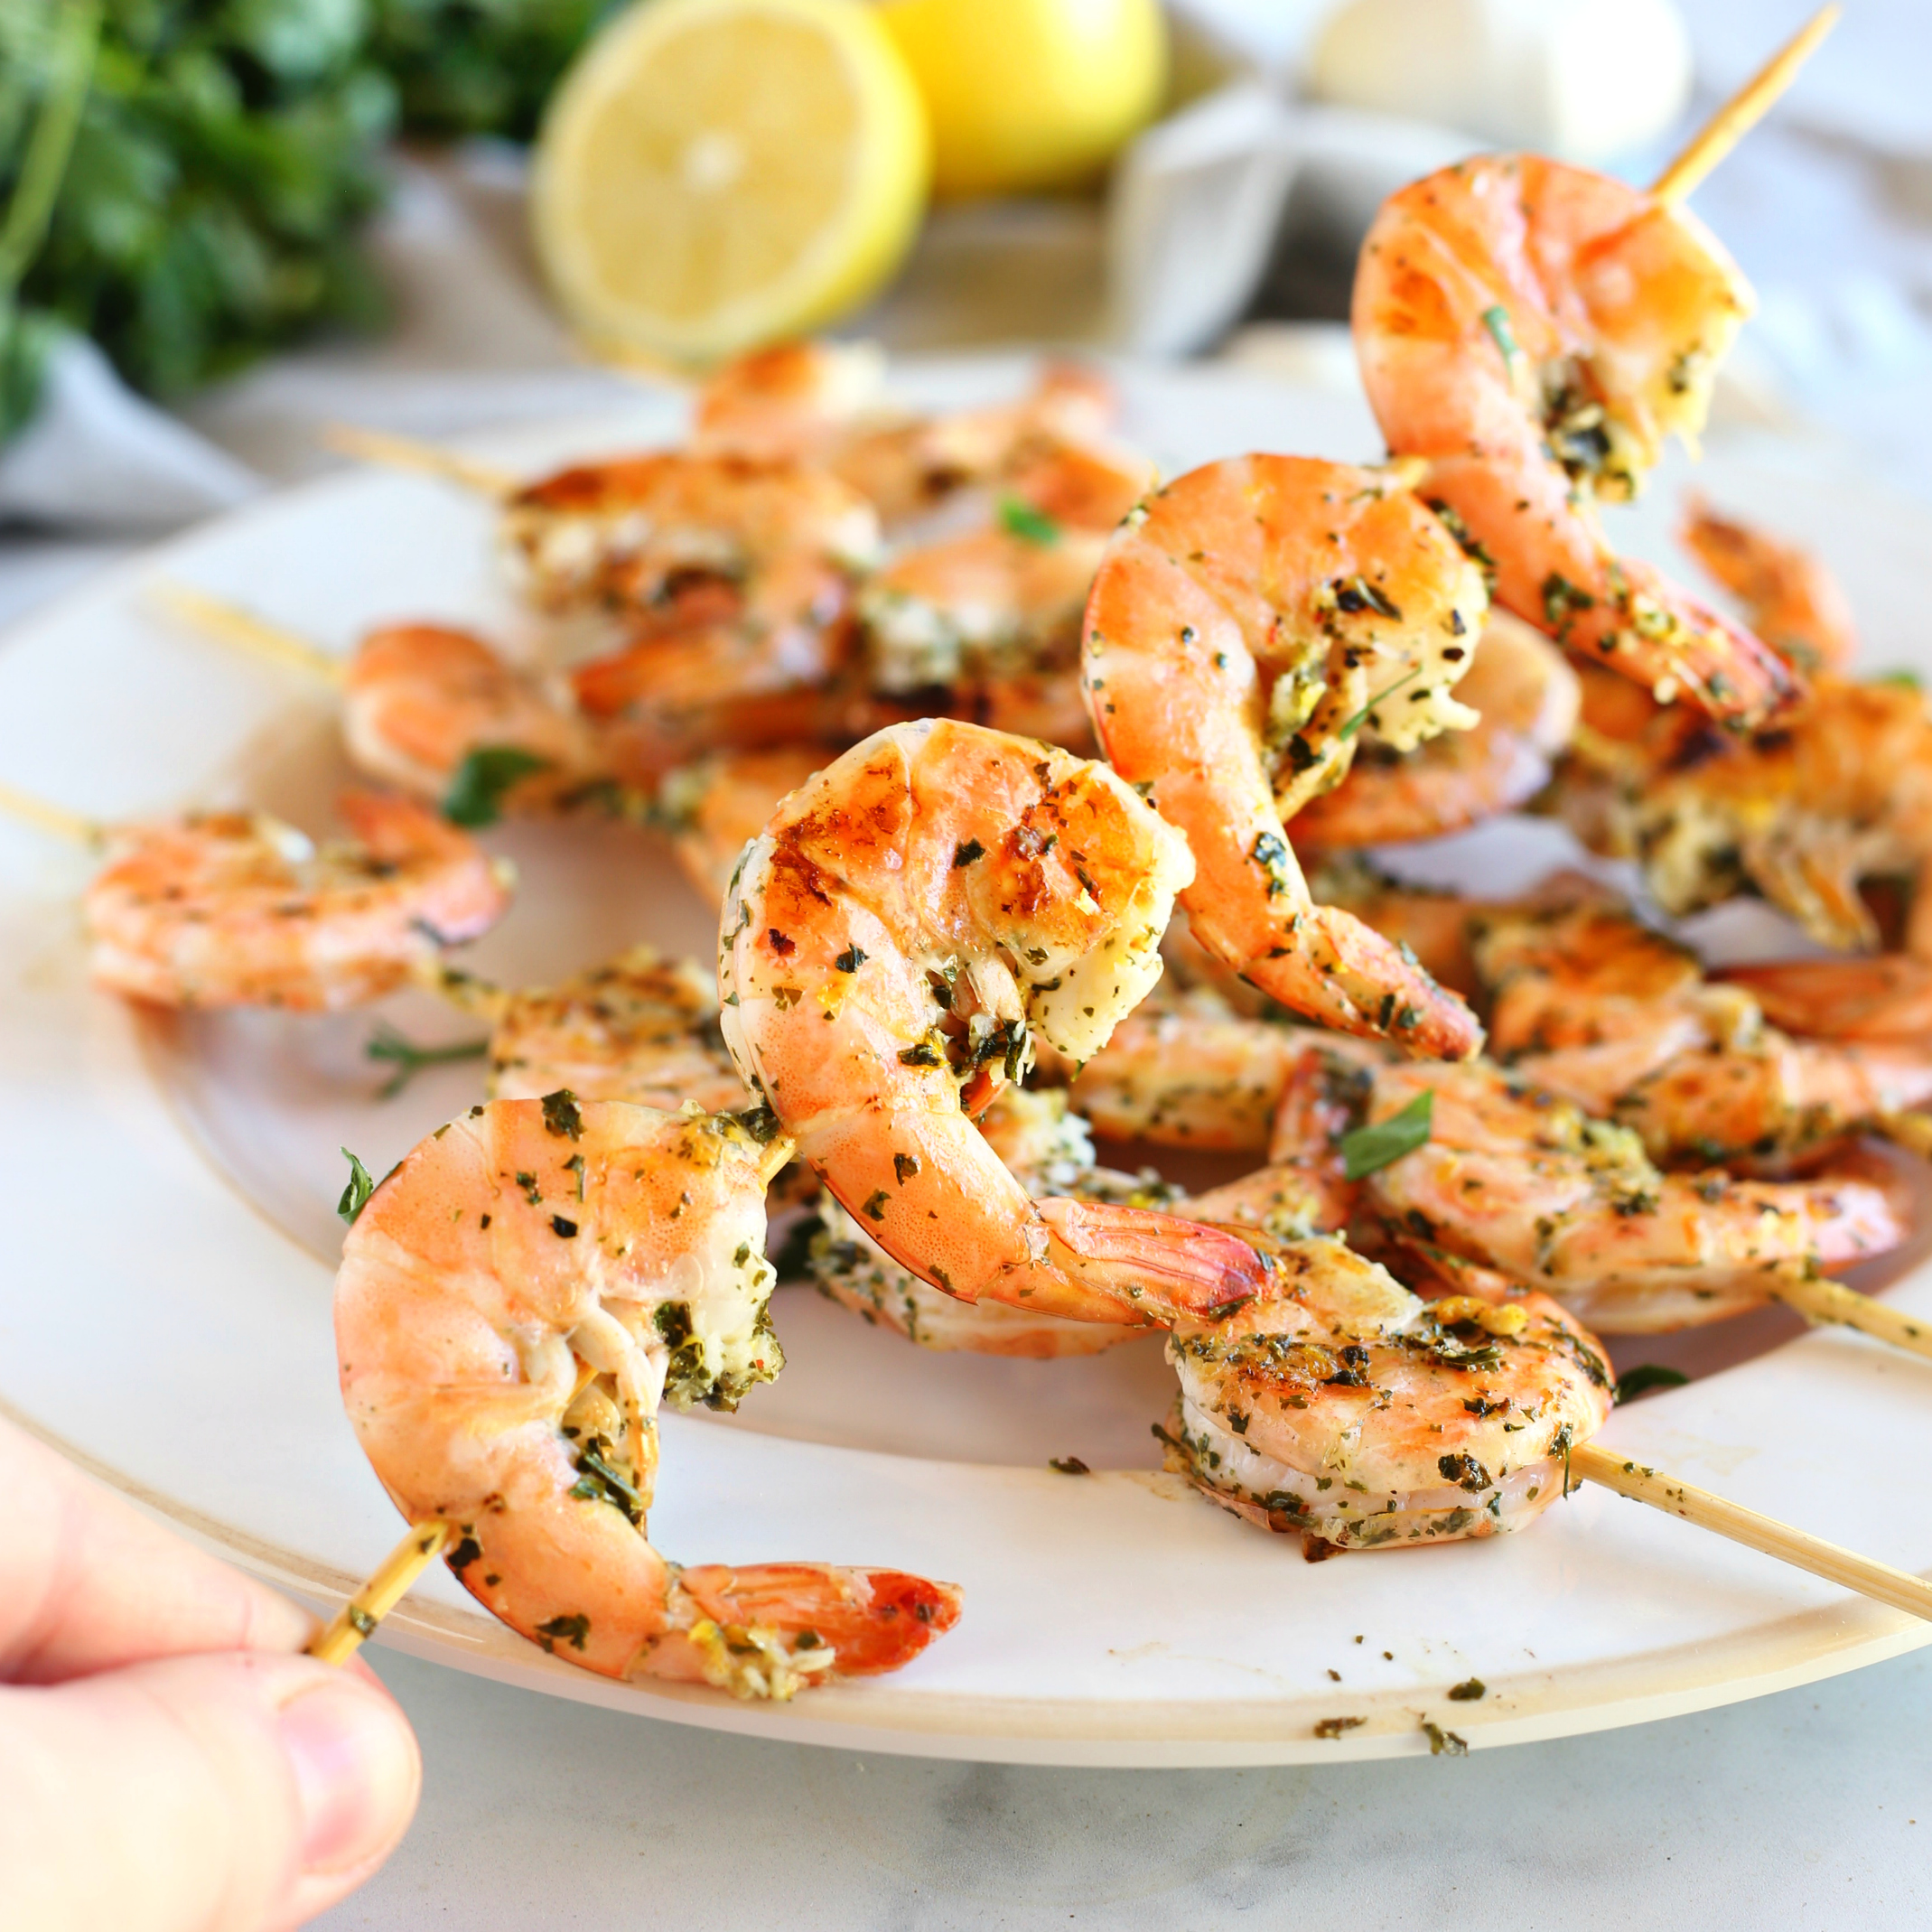 Lemon Garlic Grilled Shrimp Skewers